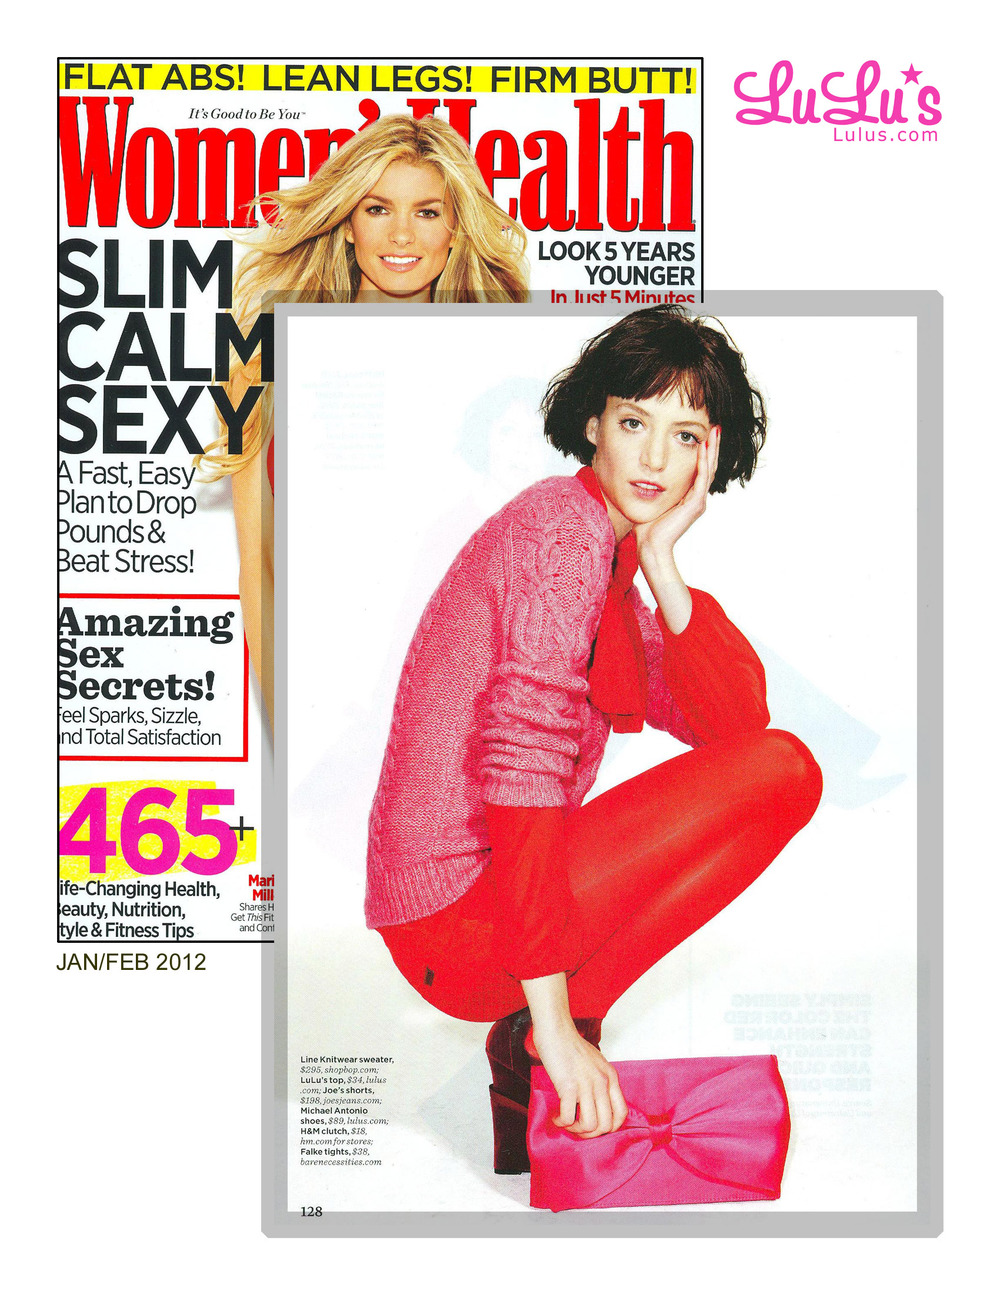 WomensHealth_Jan_Feb2012_Shoe-TopEdit.jpg